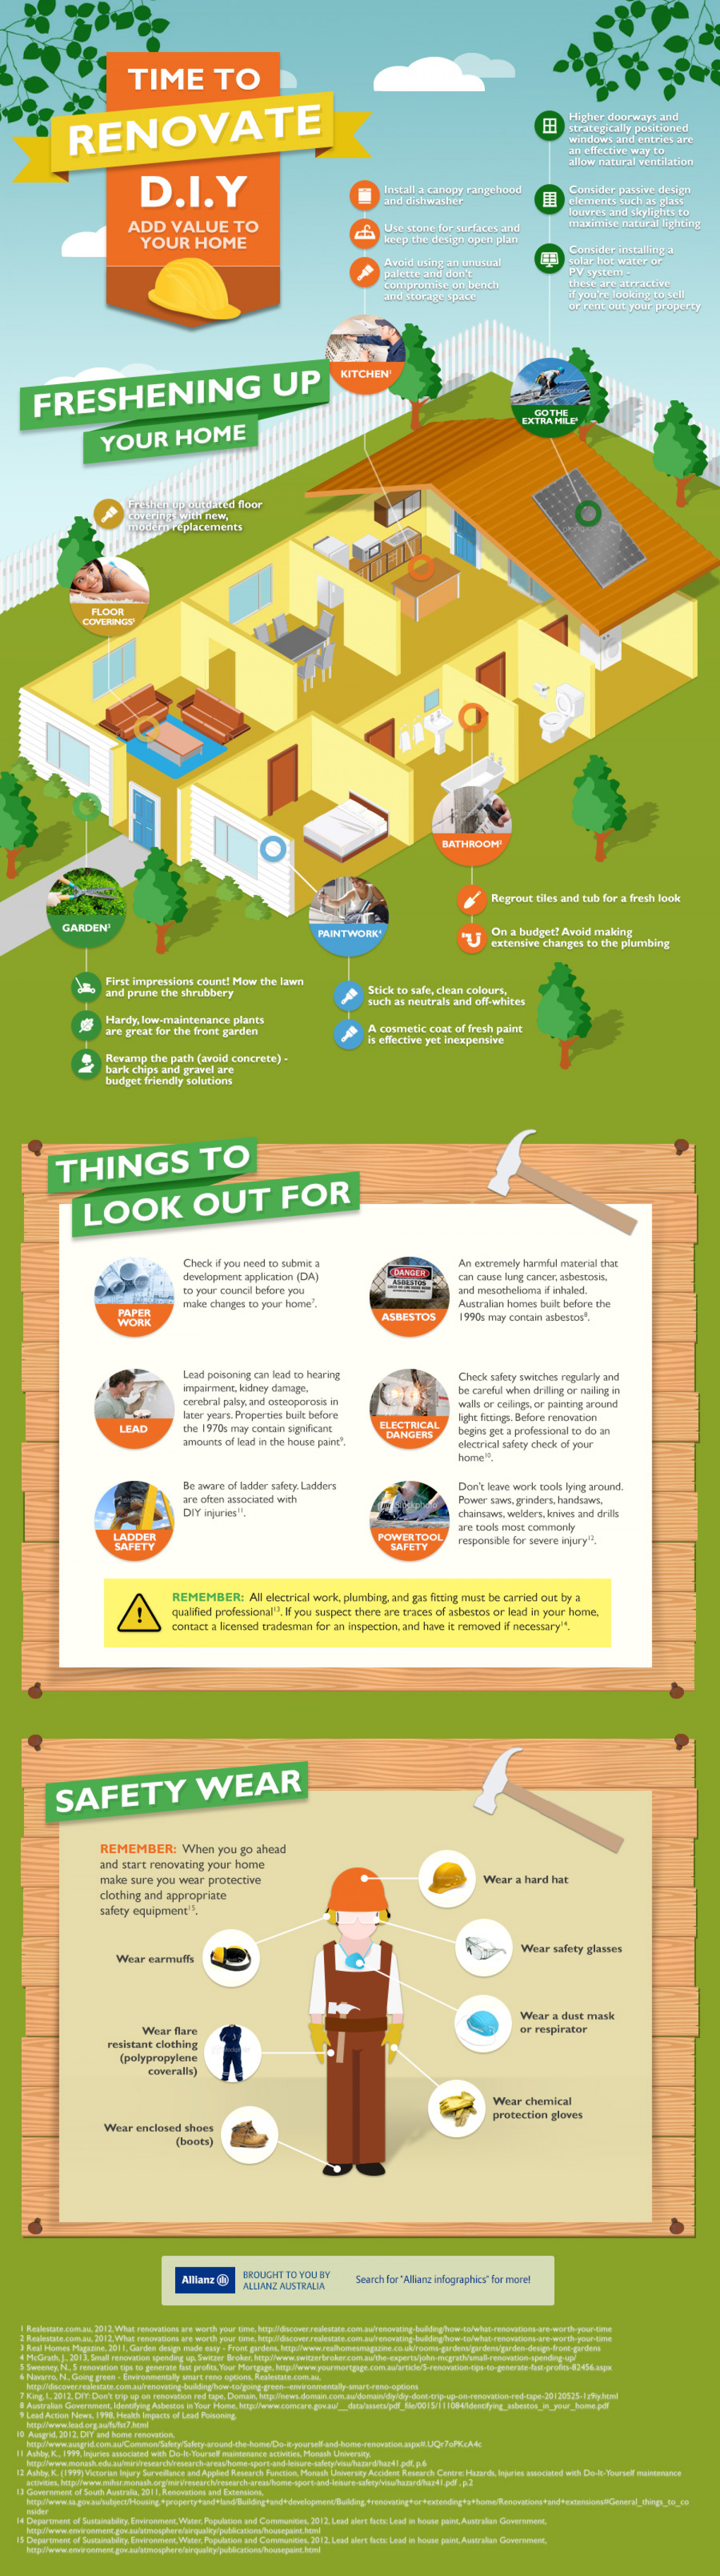 Time to renovate Infographic